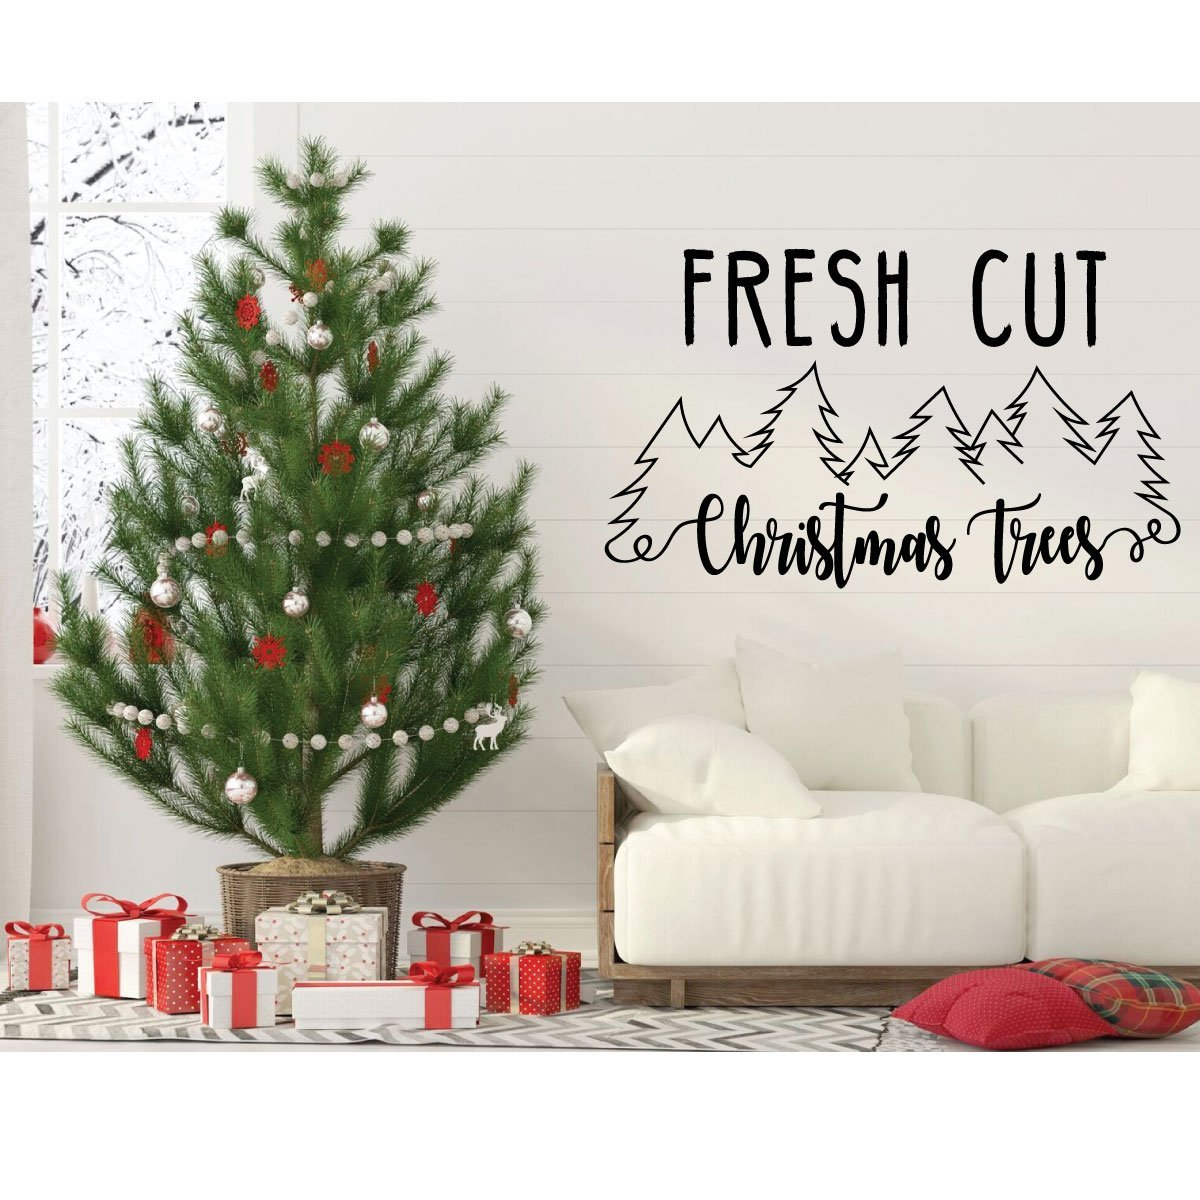 Fresh Cut Christmas Trees.Fresh Cut Christmas Tree Quote Wall Decal Vinyl Decor